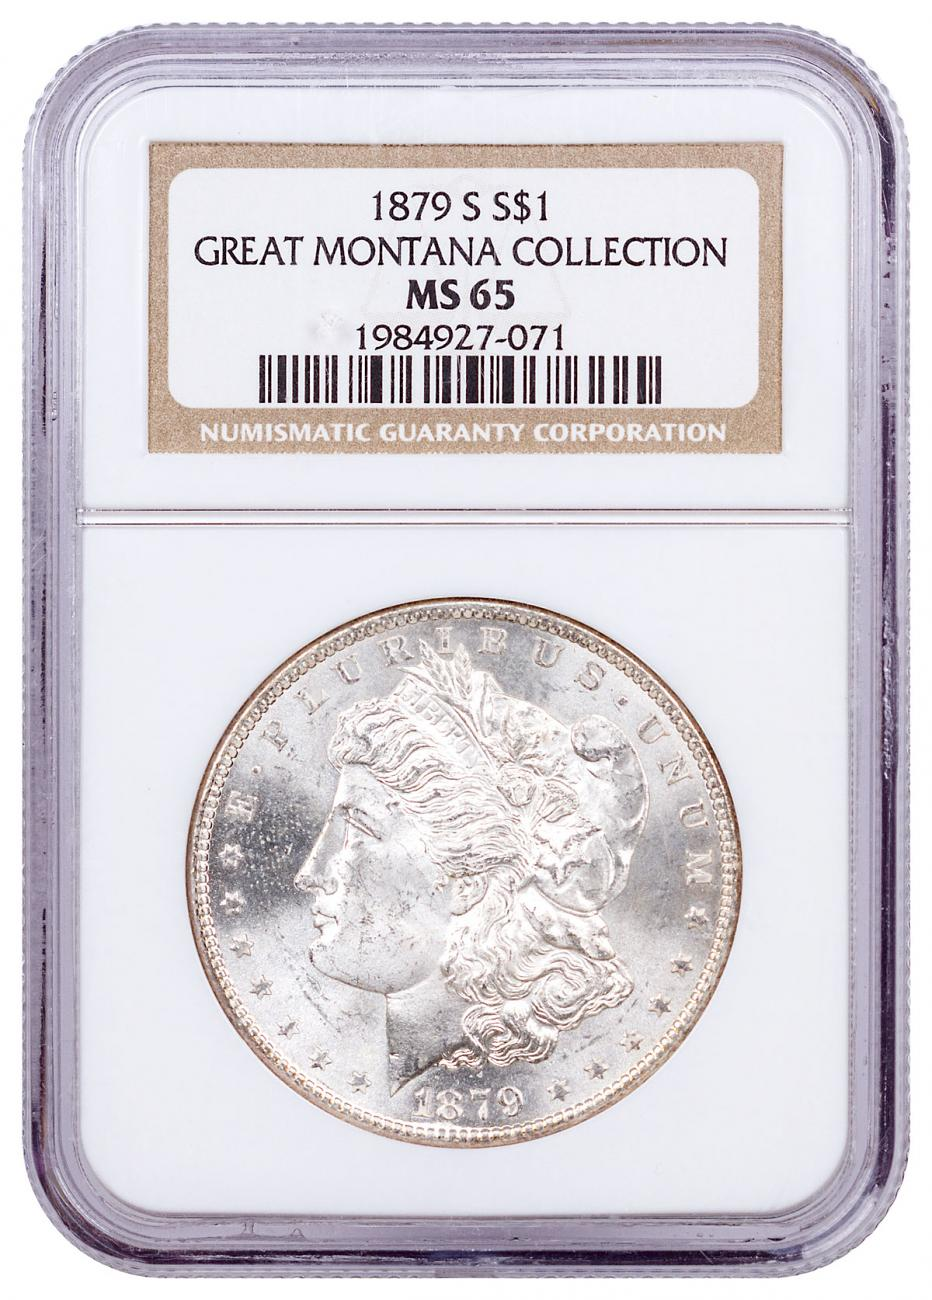 1879-S Morgan Silver Dollar From the Great Montana Collection NGC MS65 CPCR 7071